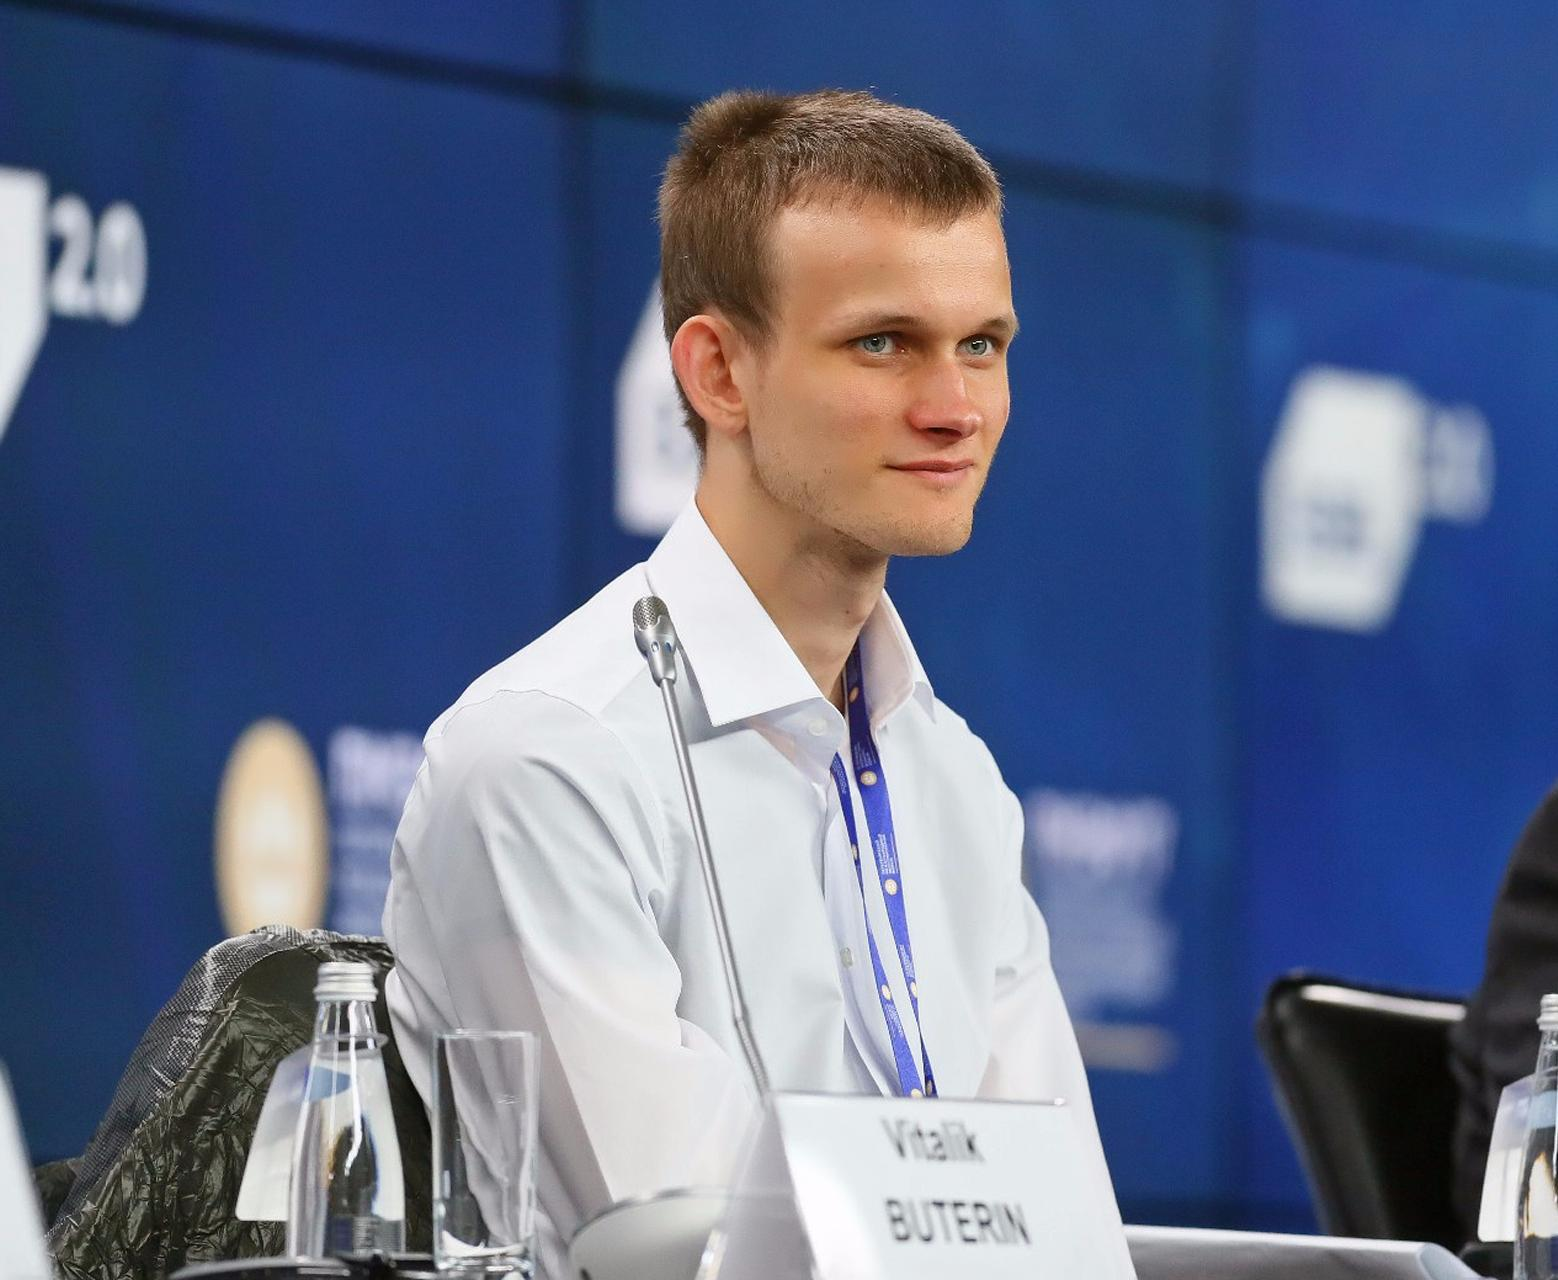 Meeting with founder of Ethereum project Vitalik Buterin